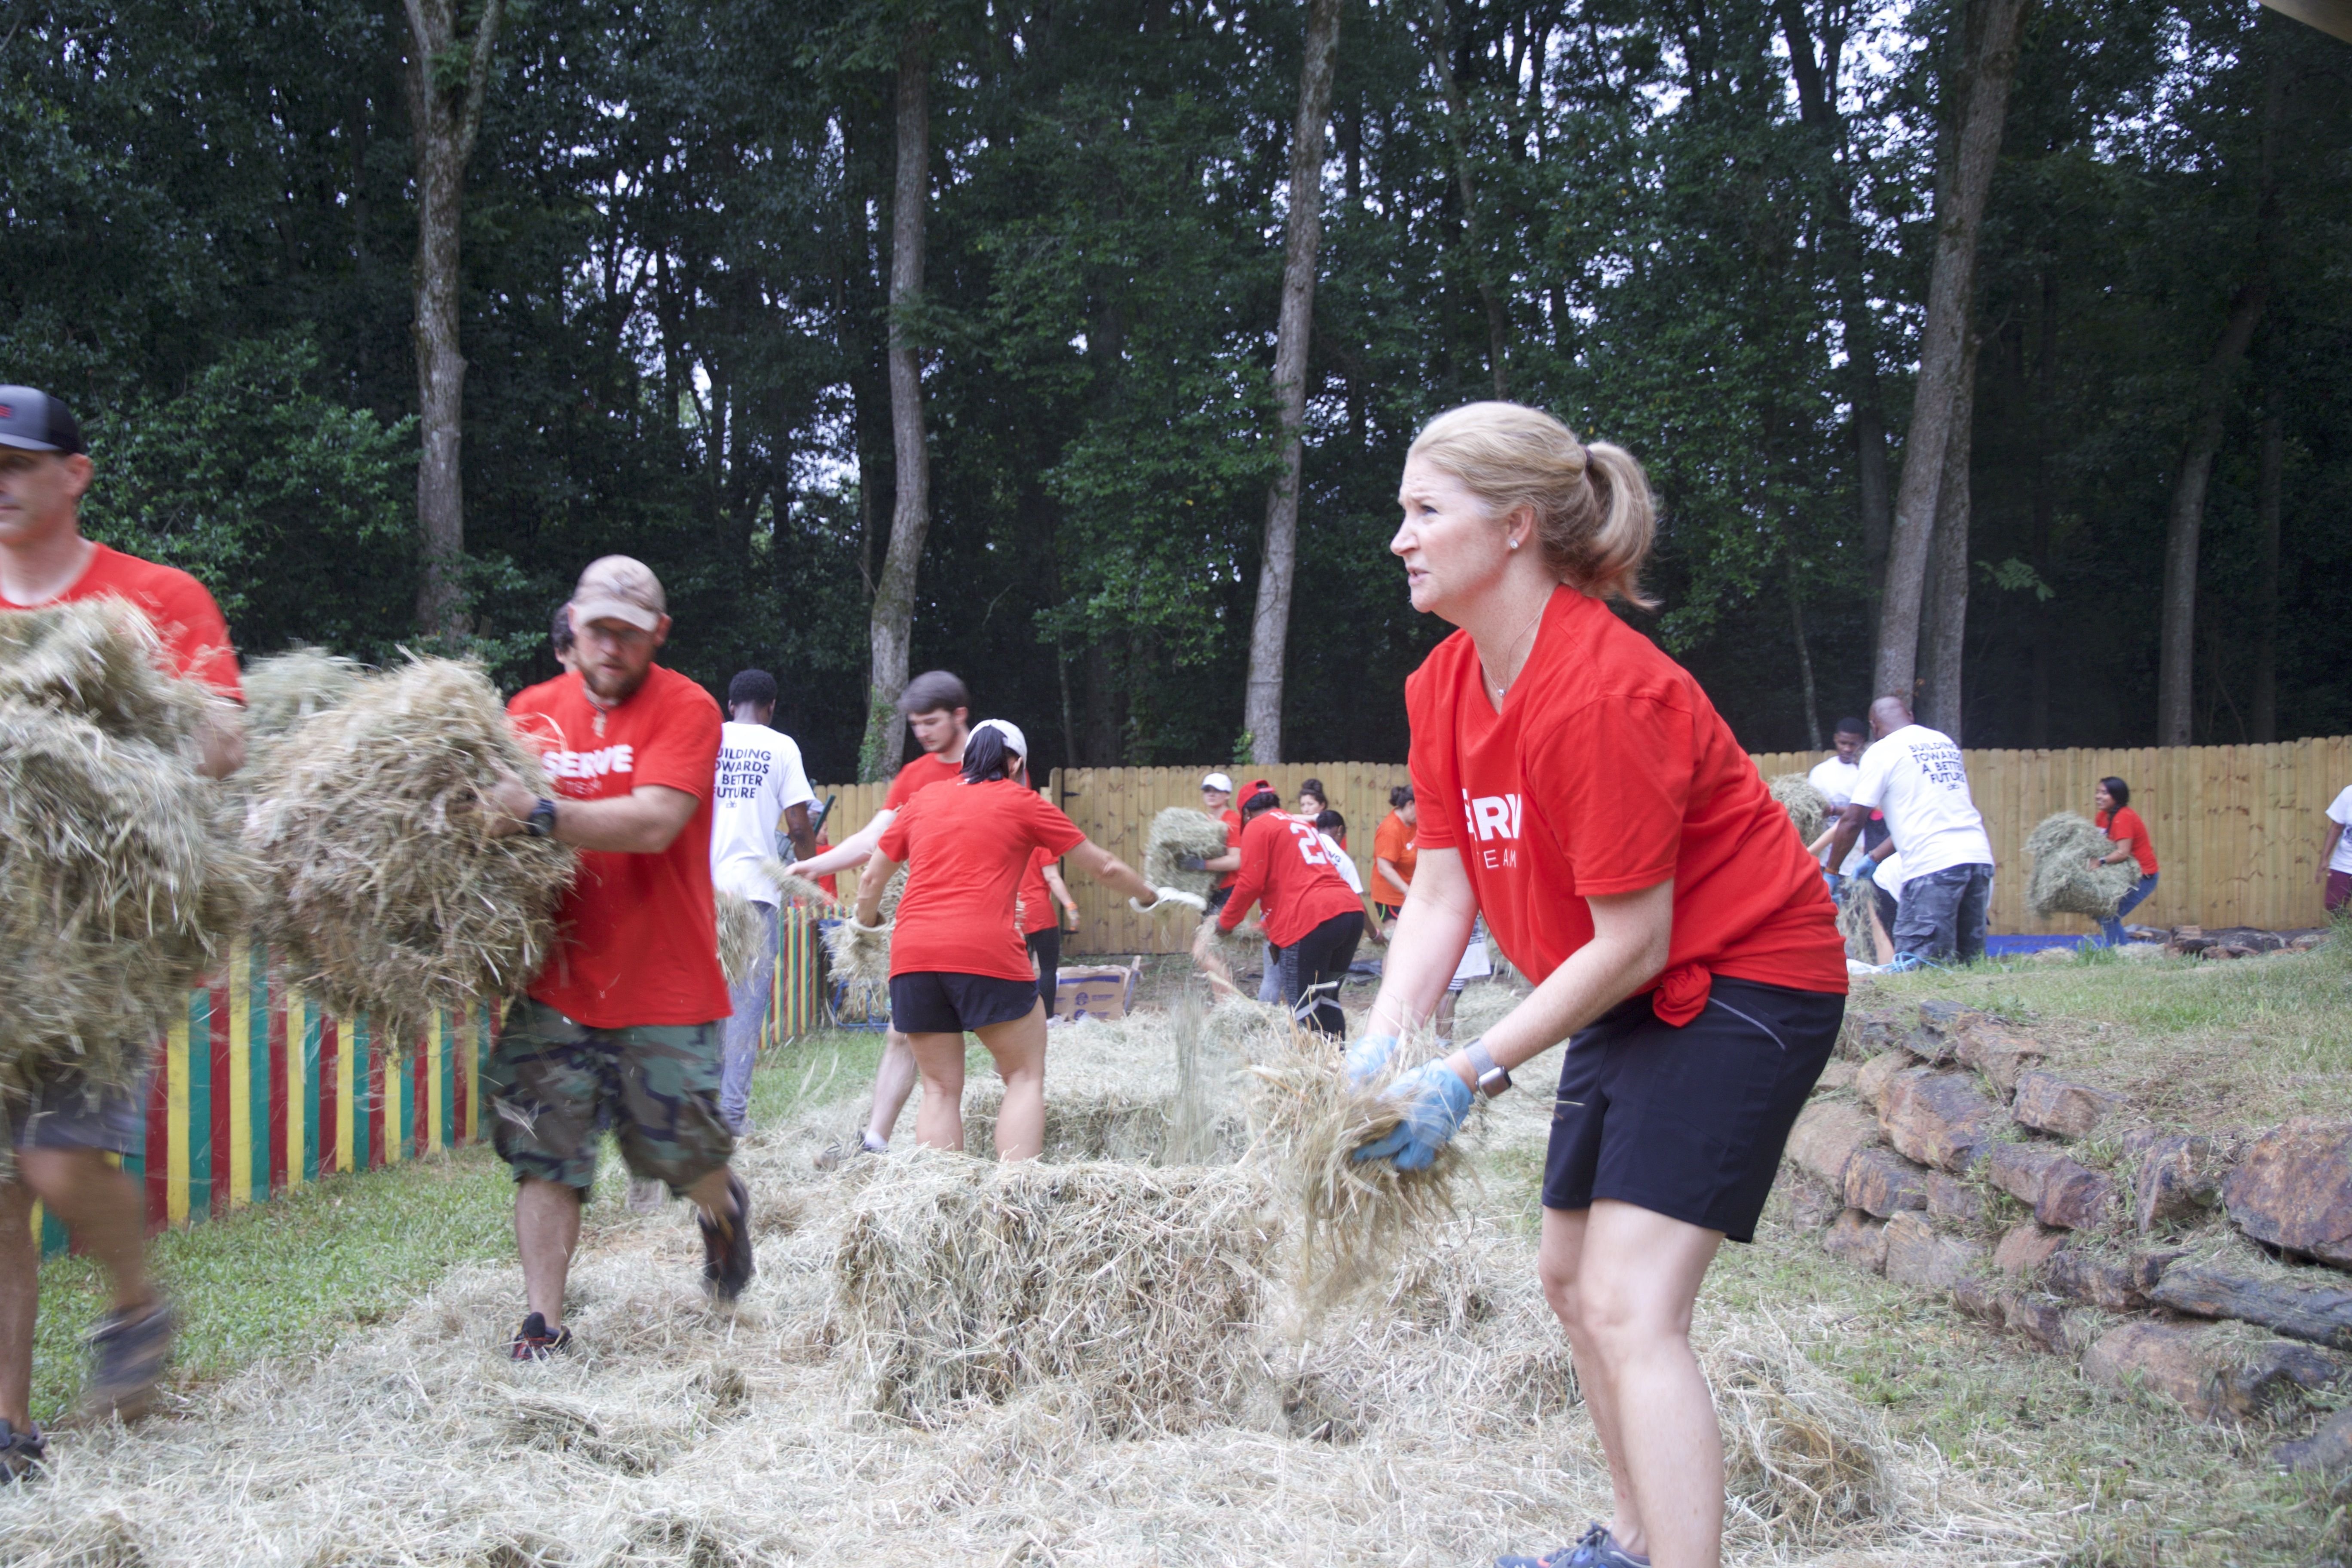 Church Of the Highlands Serve Day